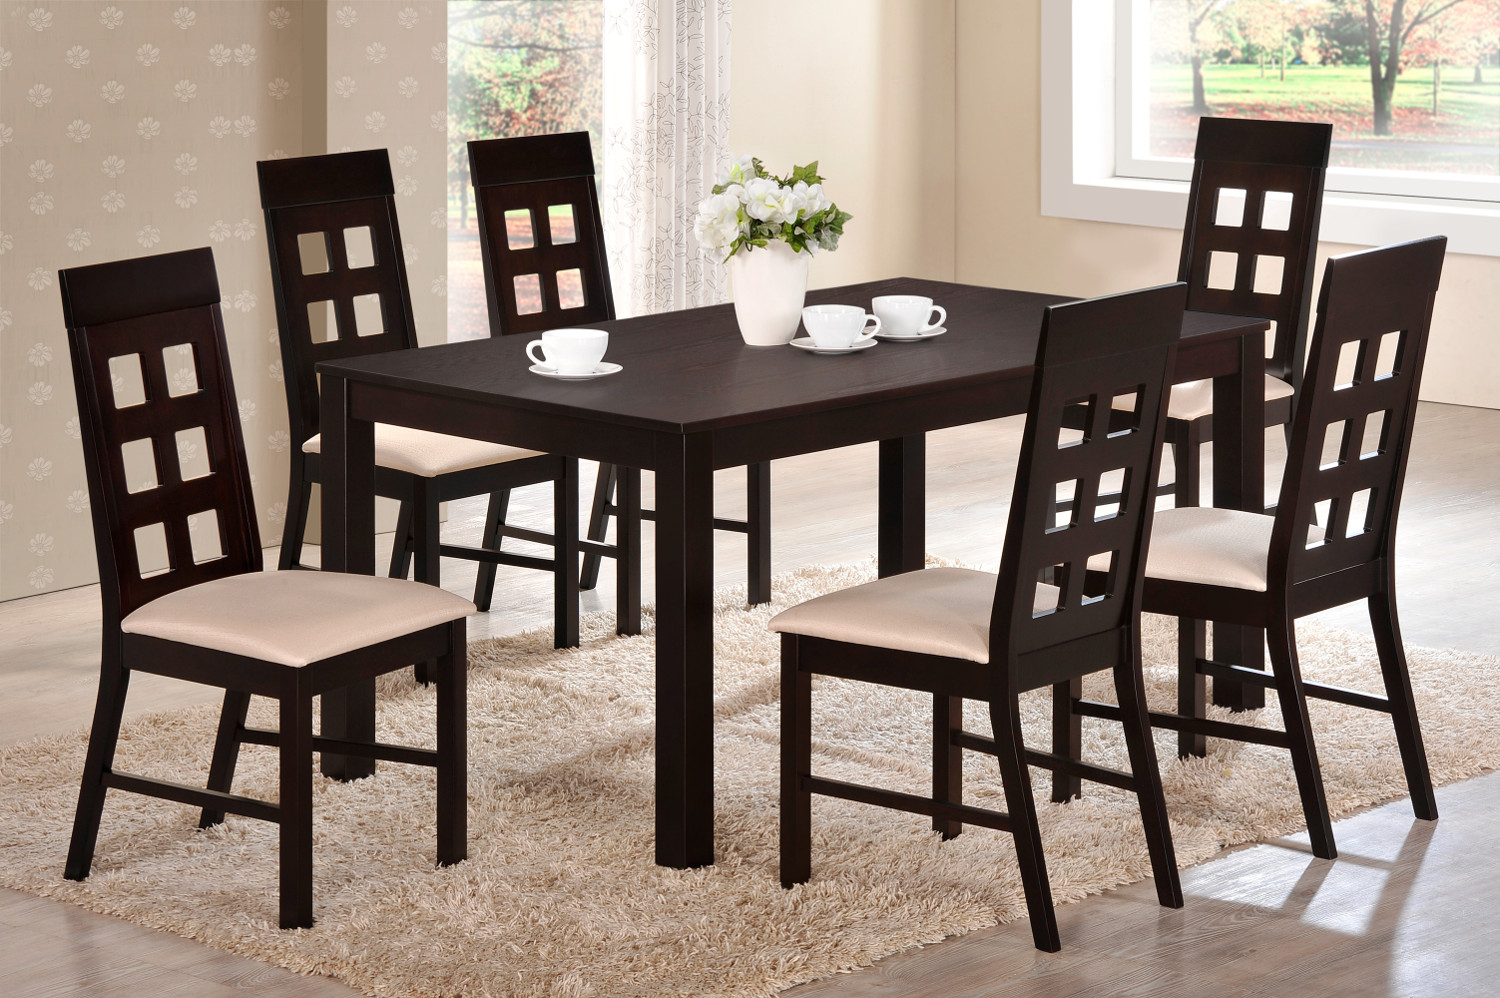 Wonderful Dining Set